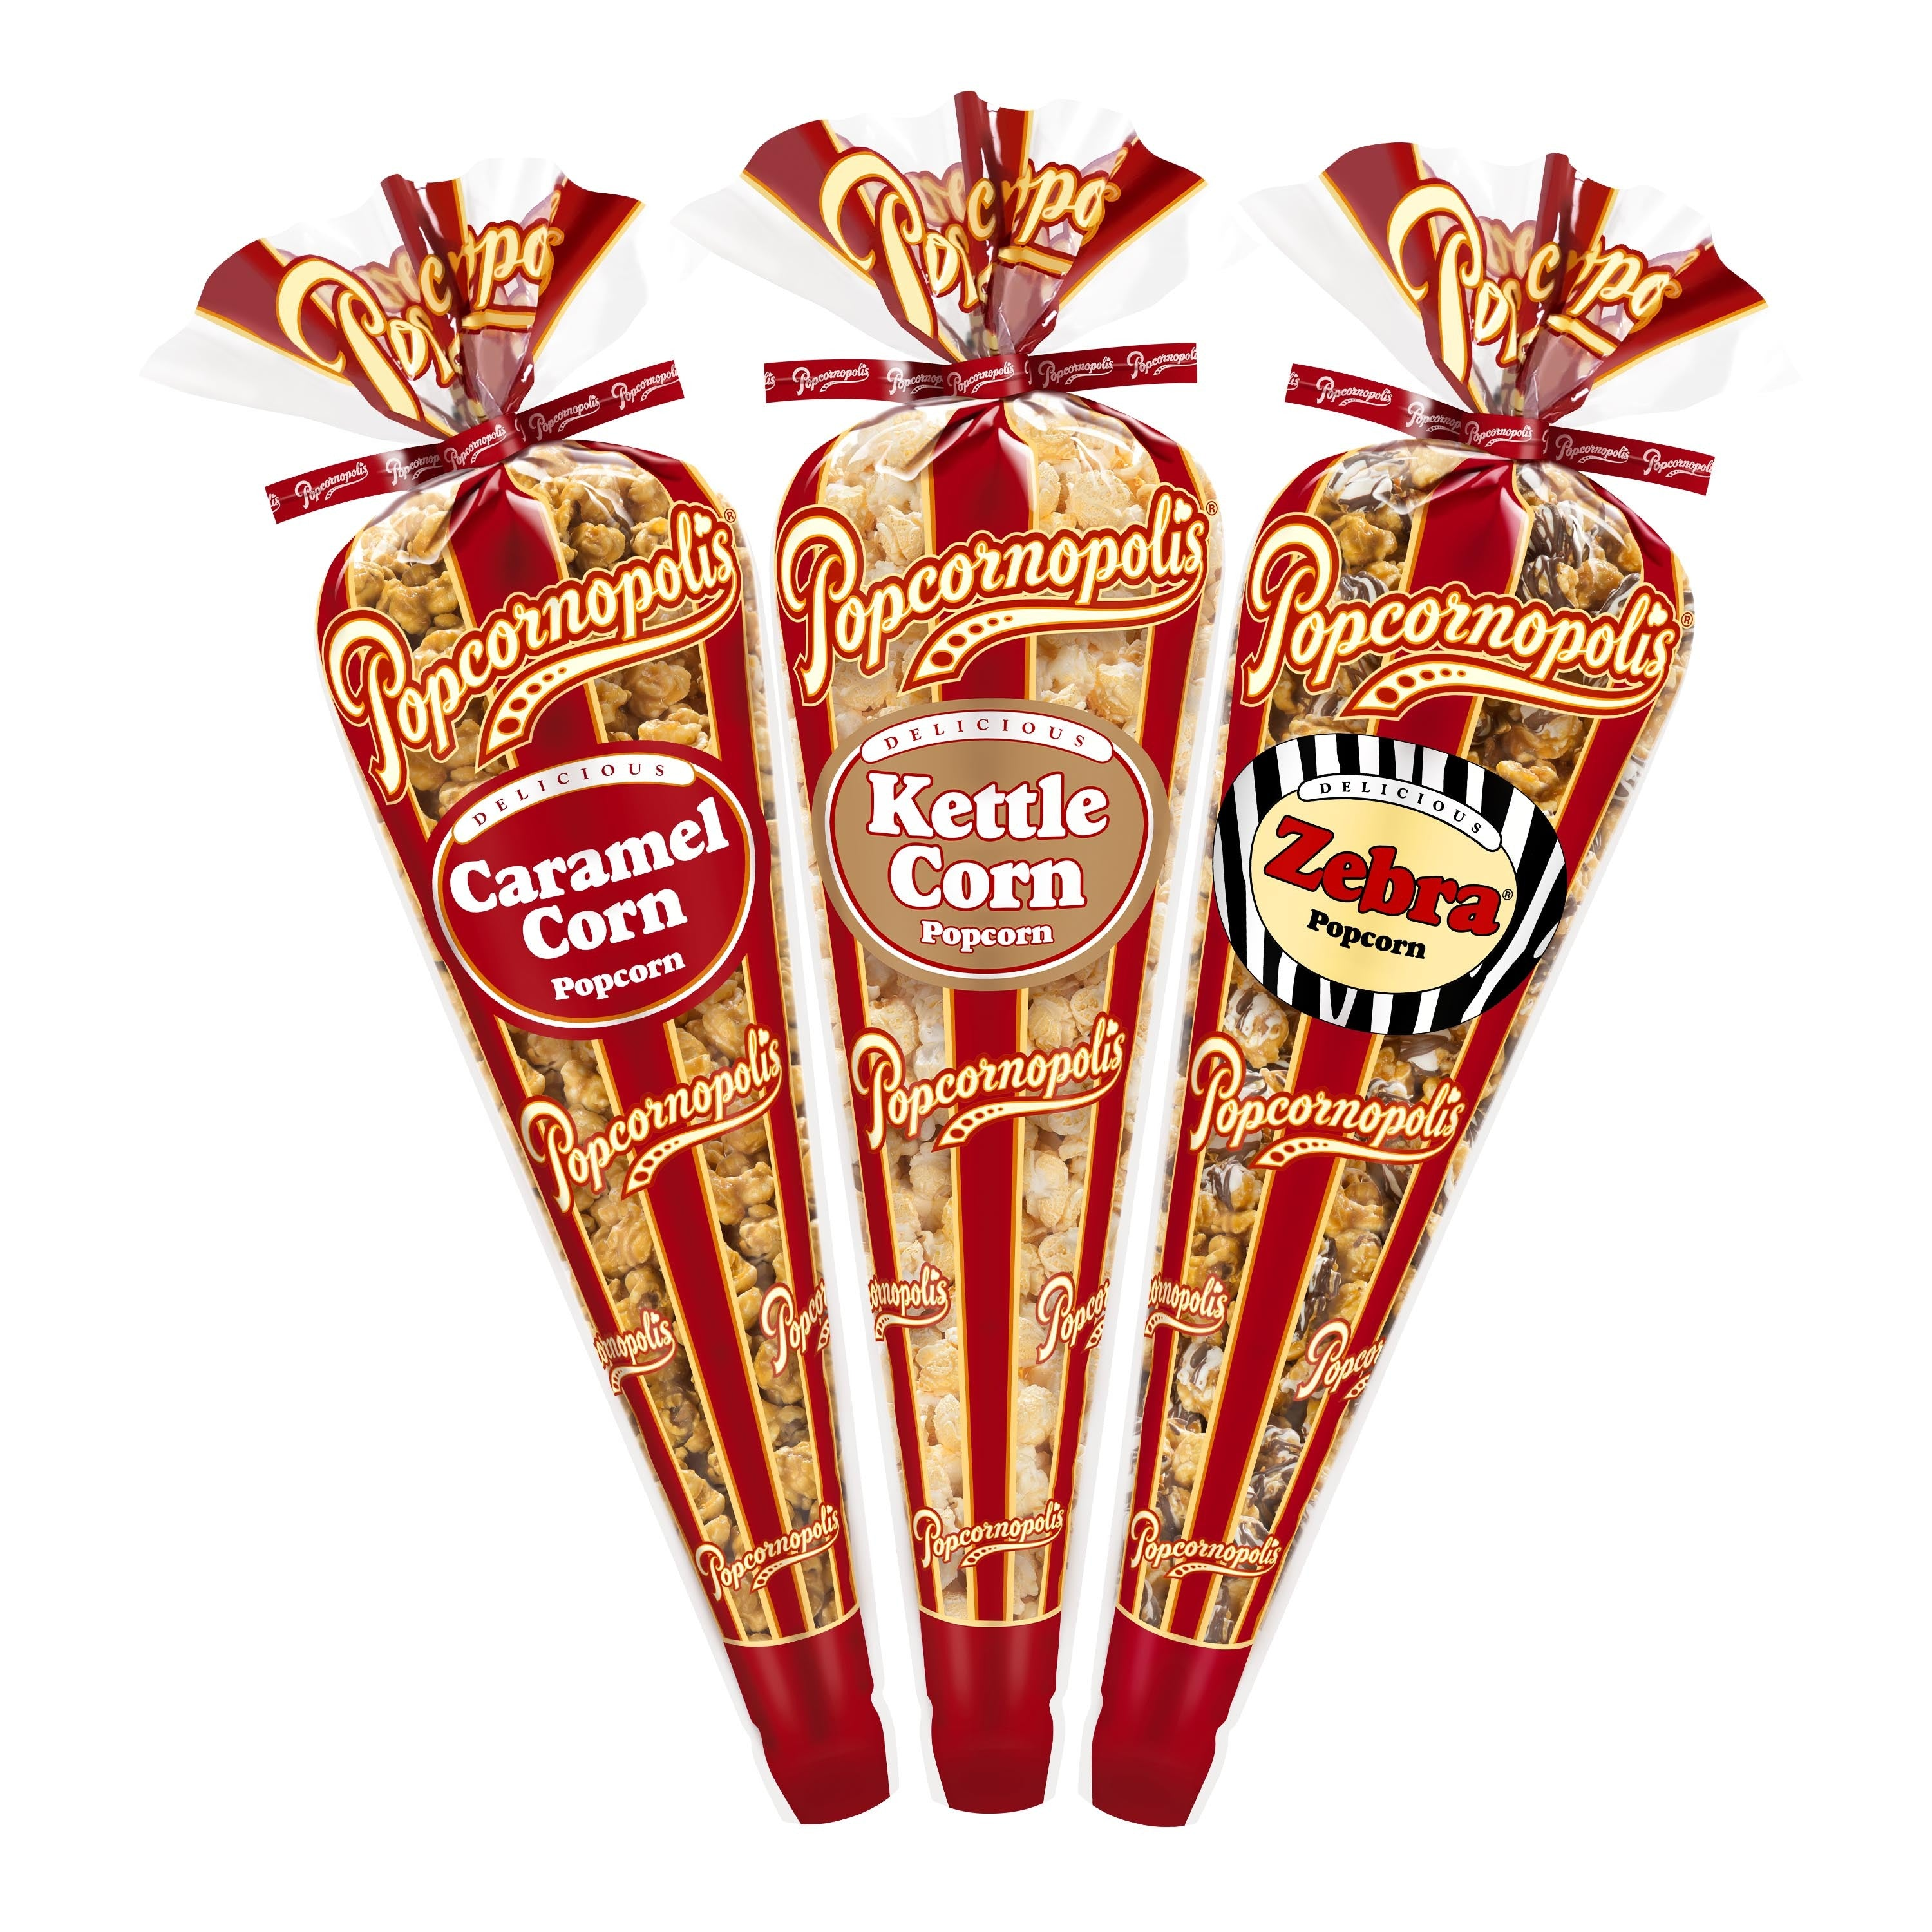 3-Cone Caramel, Zebra® and Kettle Pack